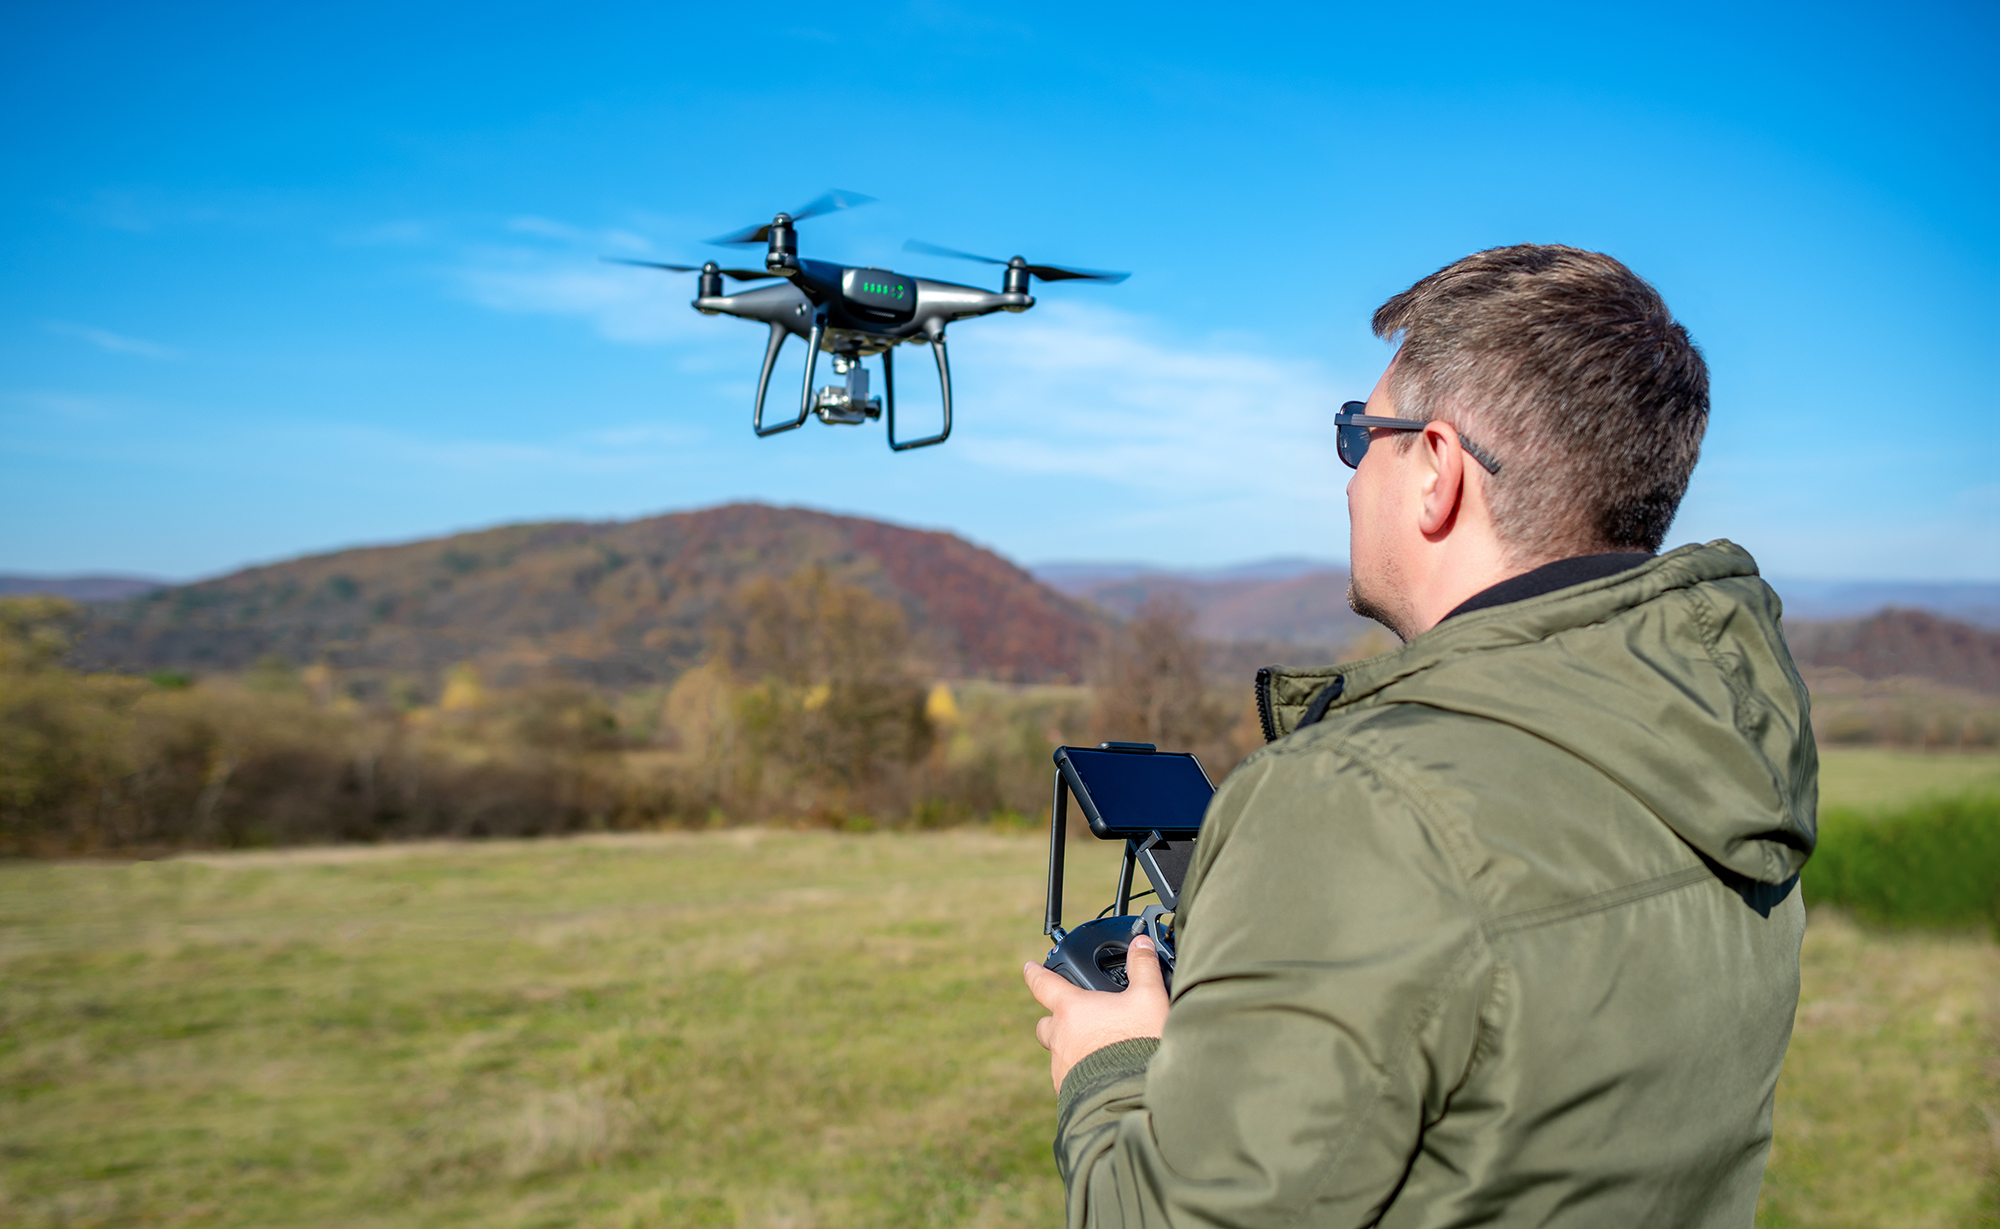 communications between the drone and controller